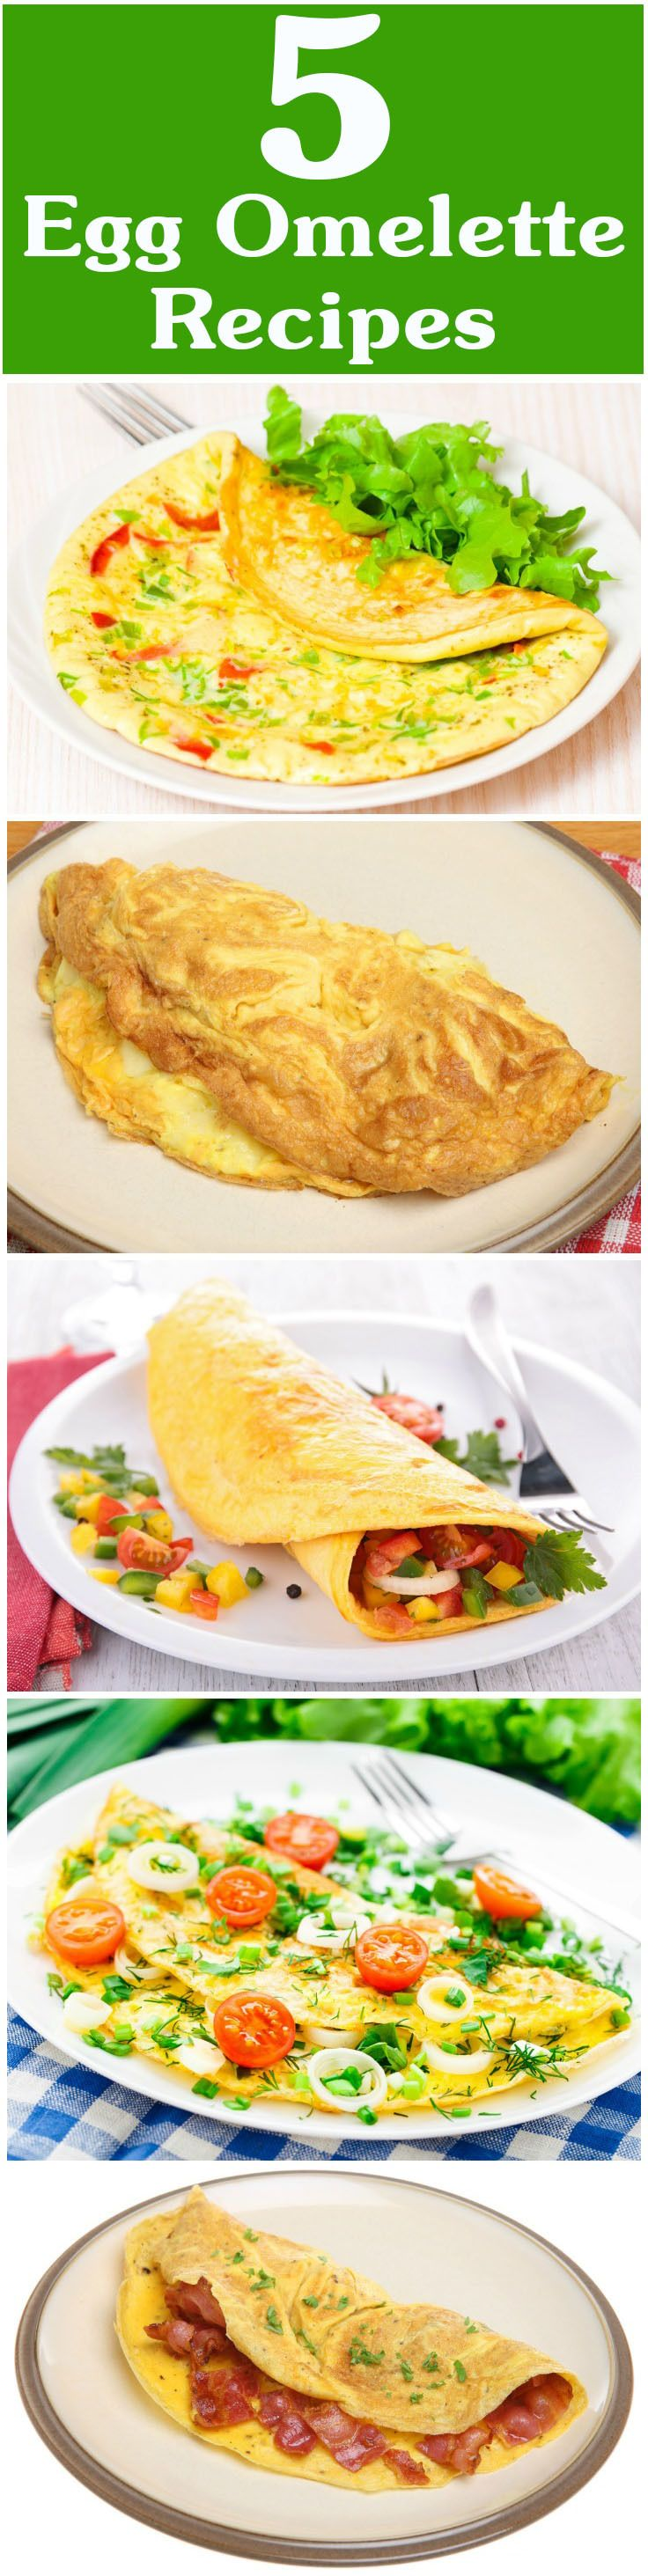 Omelets are one of the quickest and tastiest ways to include egg in your diet. Here are 5 yummy egg omelette recipes for you to try out today. Read on to know more